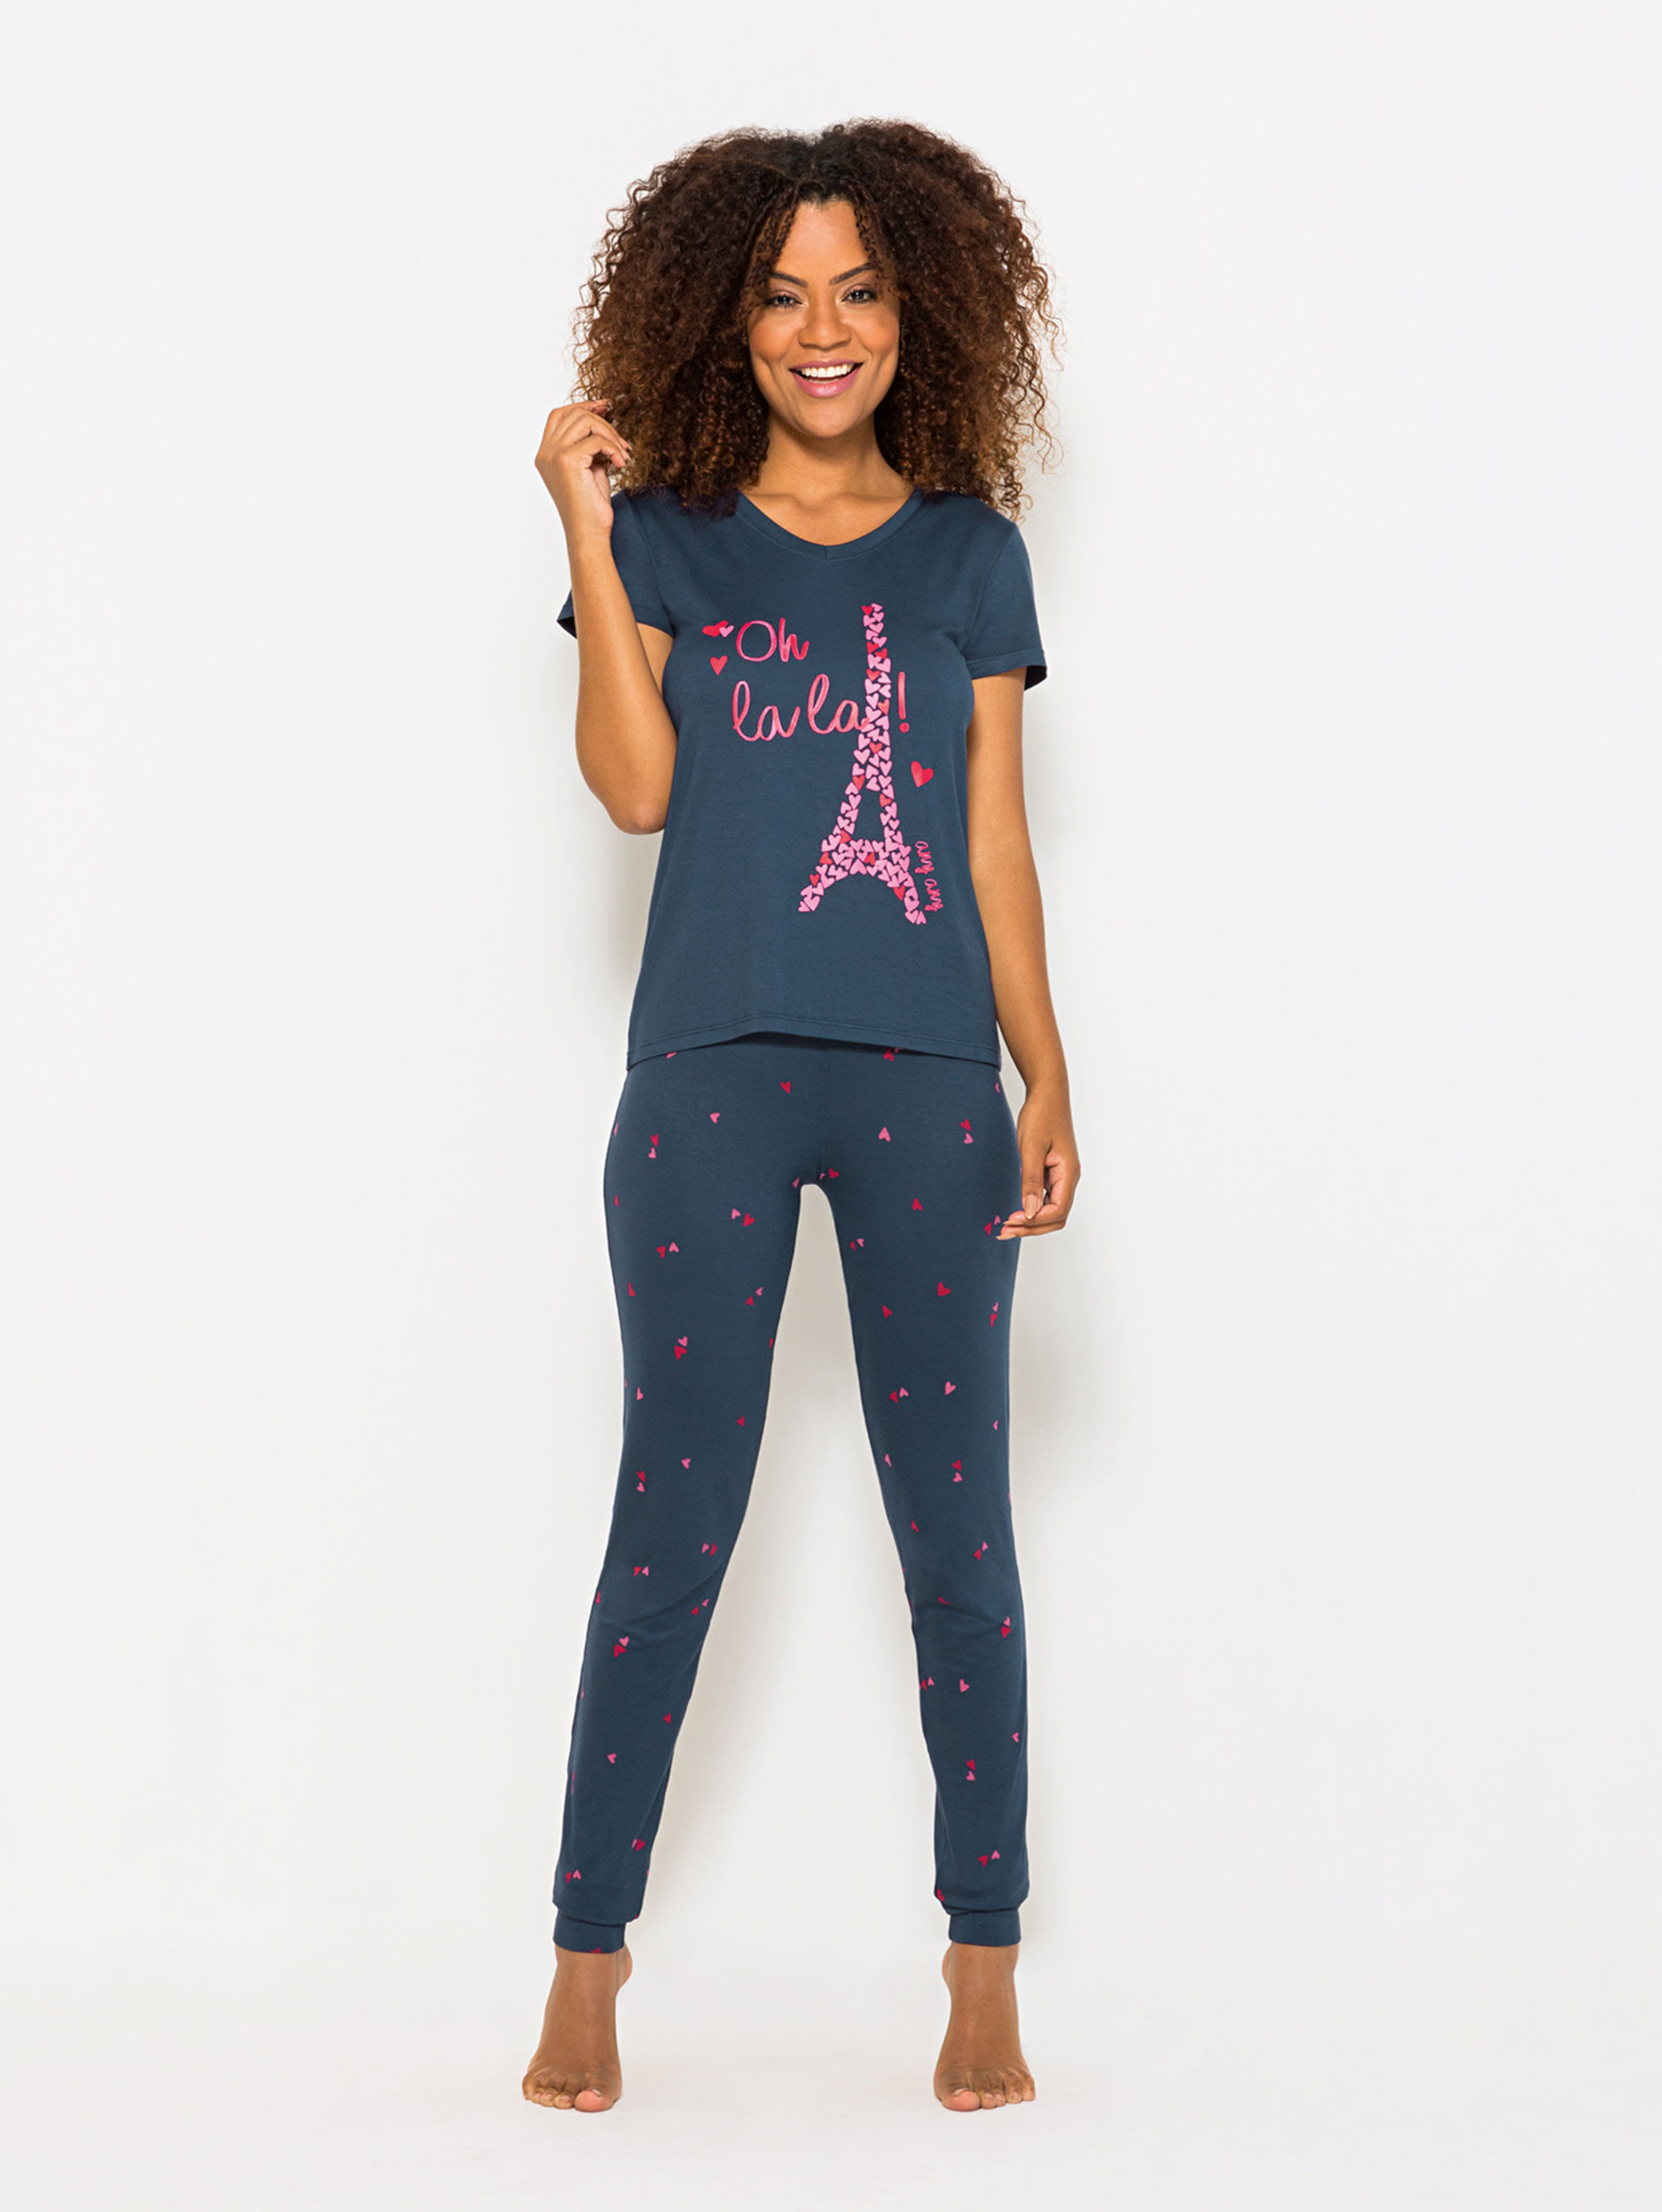 Pijama-Feminino-Manga-Curta-Love-Paris-04.04.0500